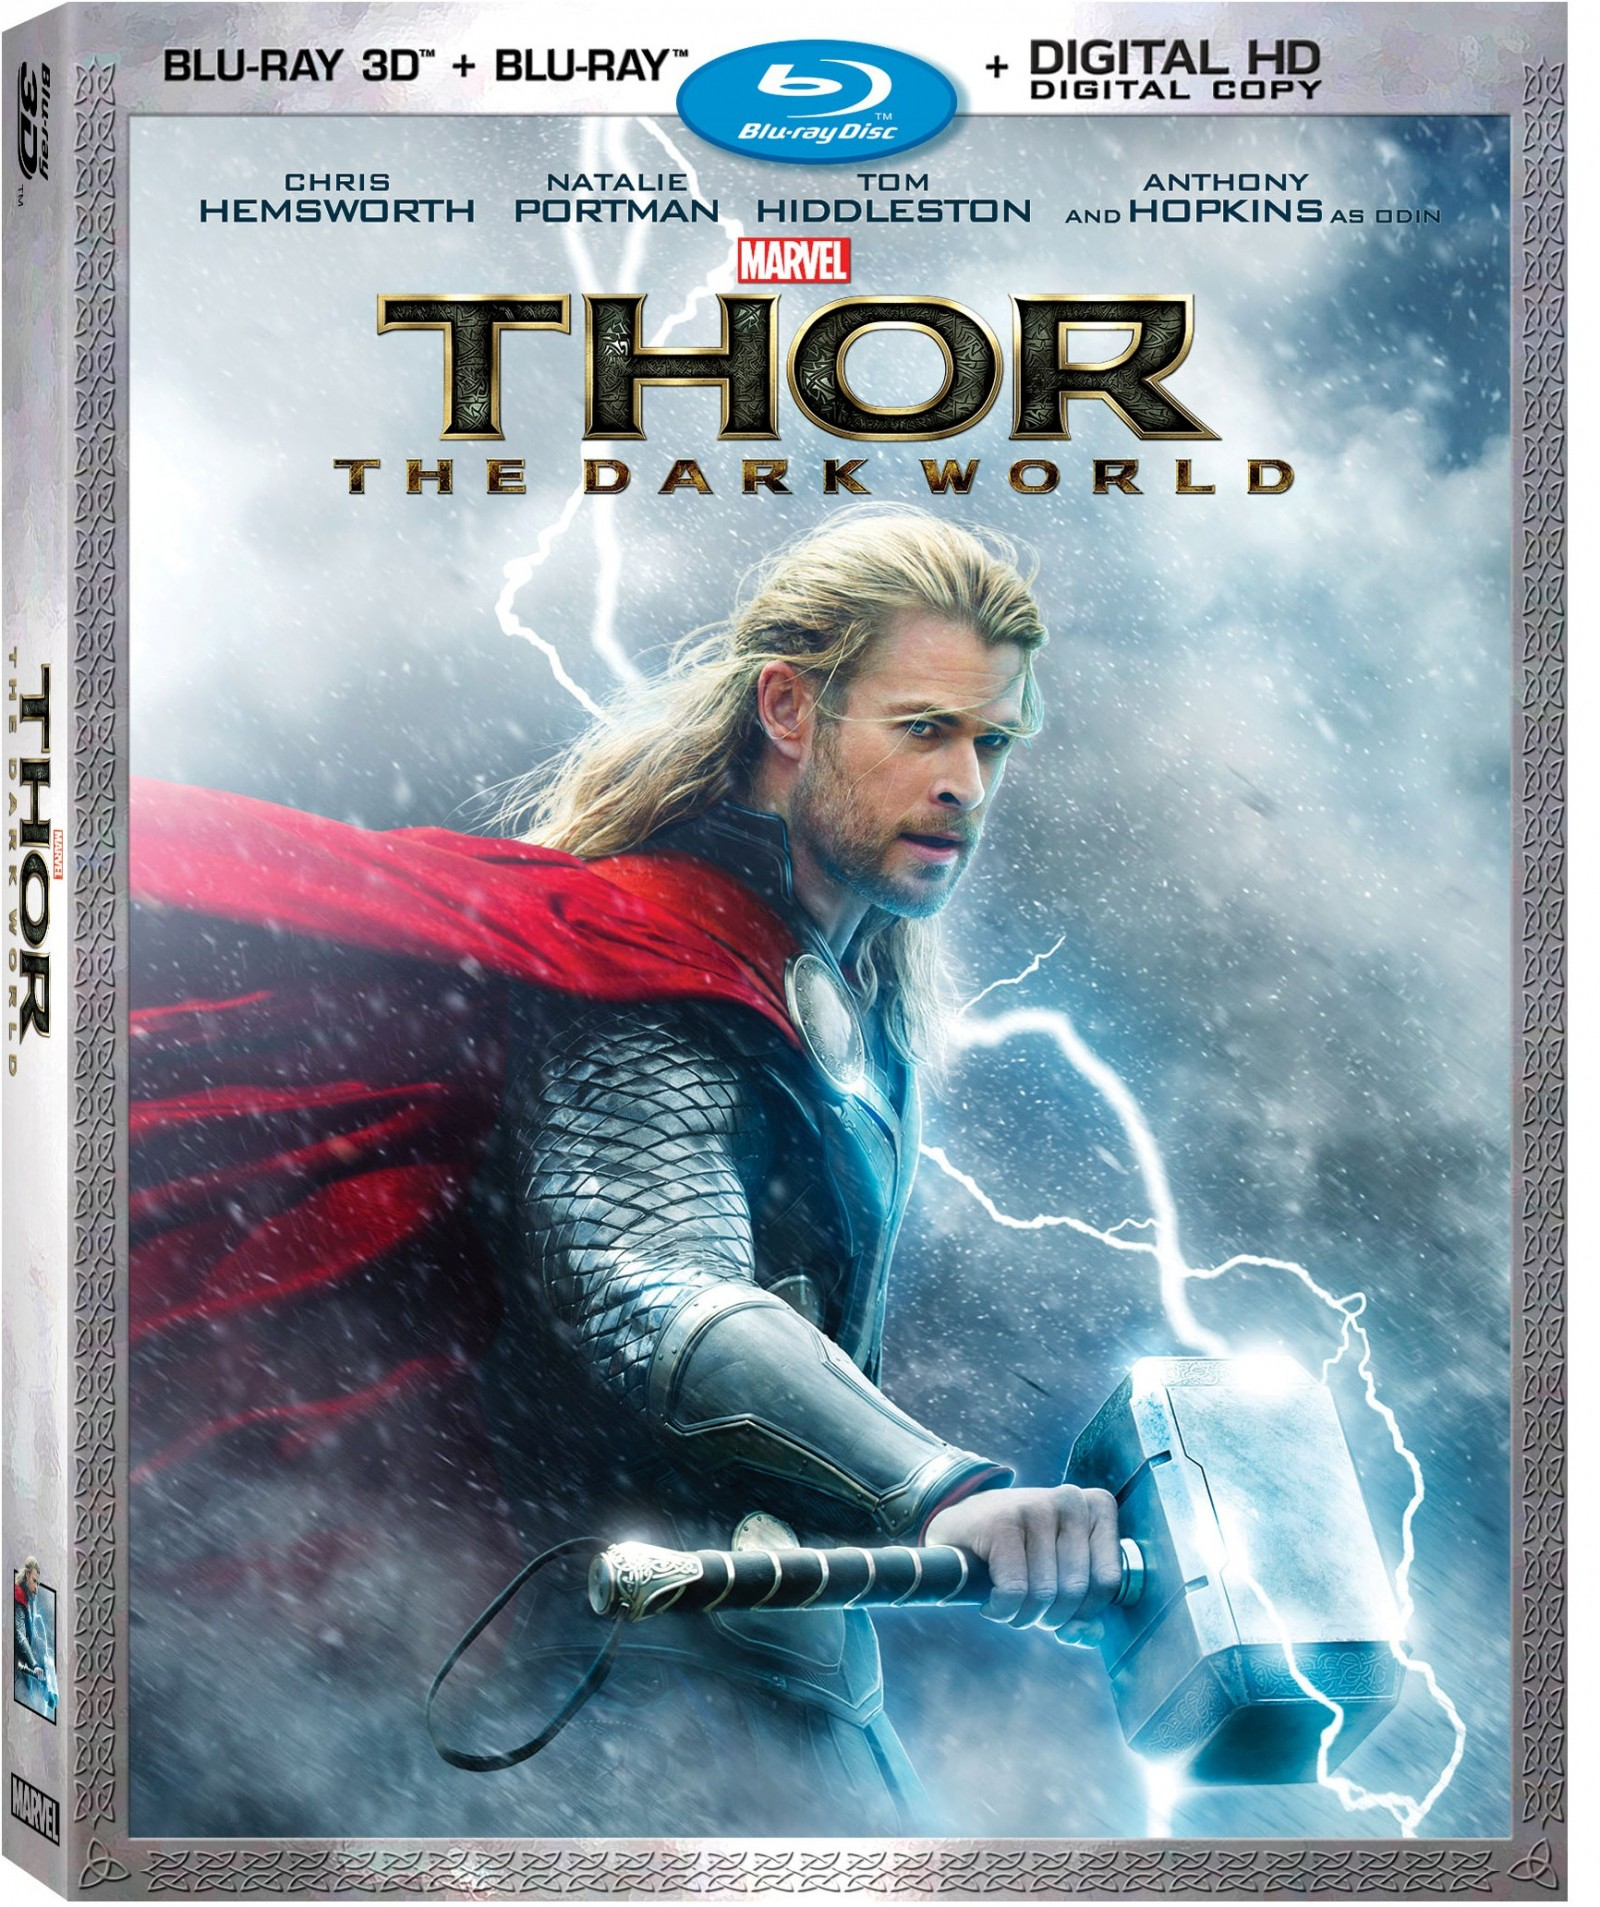 Marvel's Thor: The Dark World on 3D Blu-ray, 2D Blu-ray, Digital Copy – February 25th, 2014